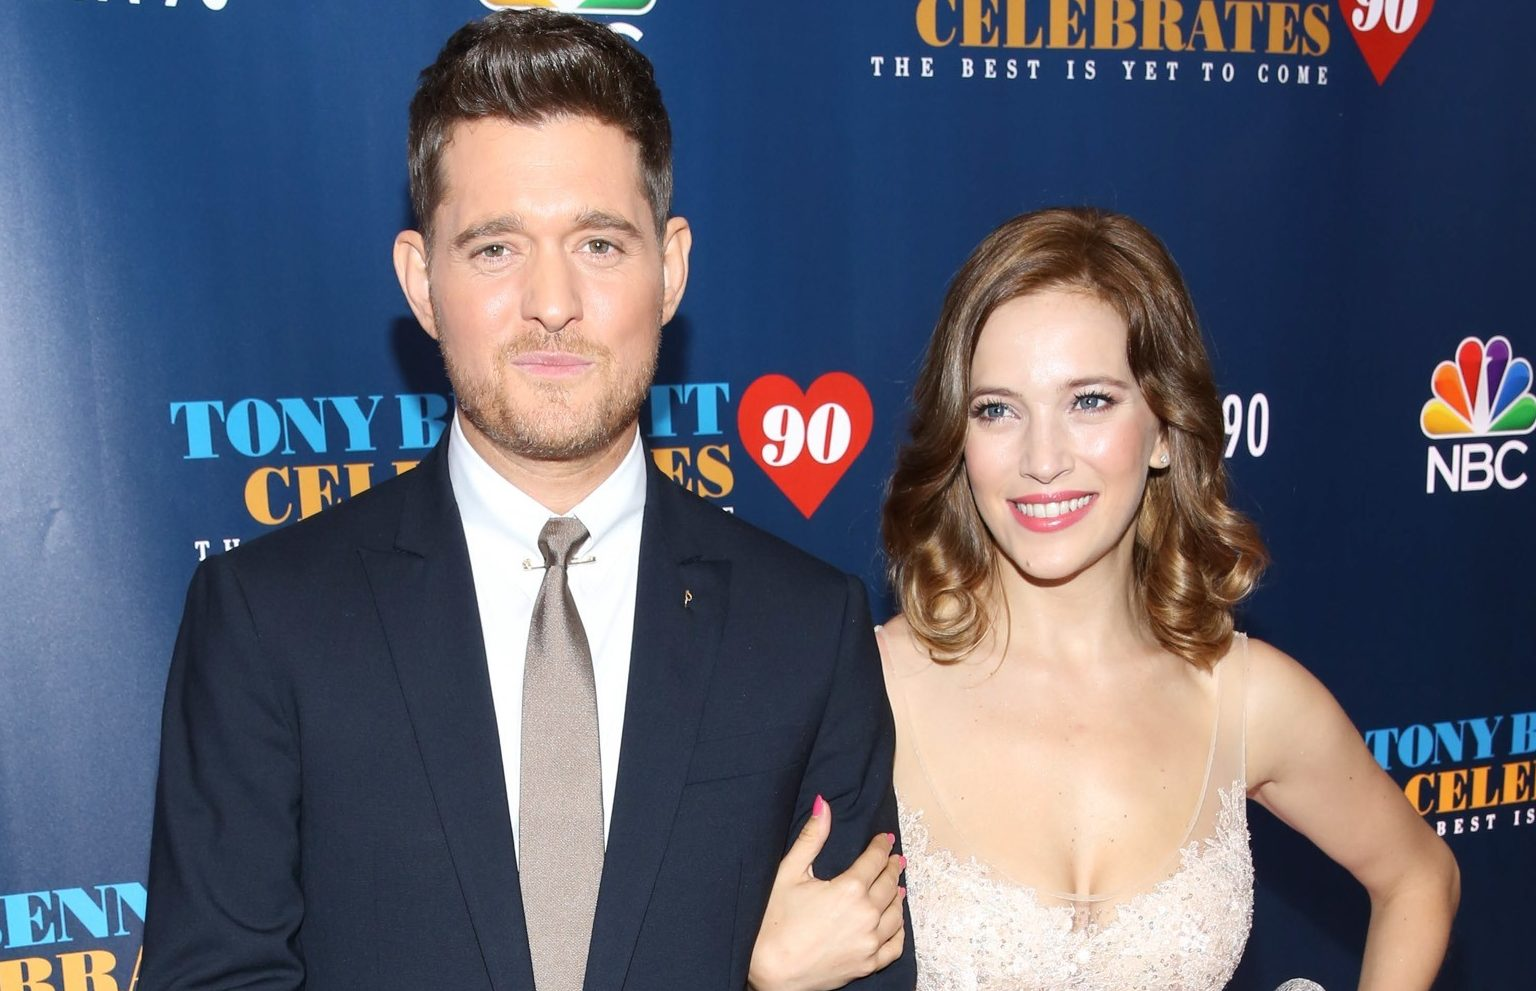 Michael Bublé and wife Luisana Lopilato welcome third child